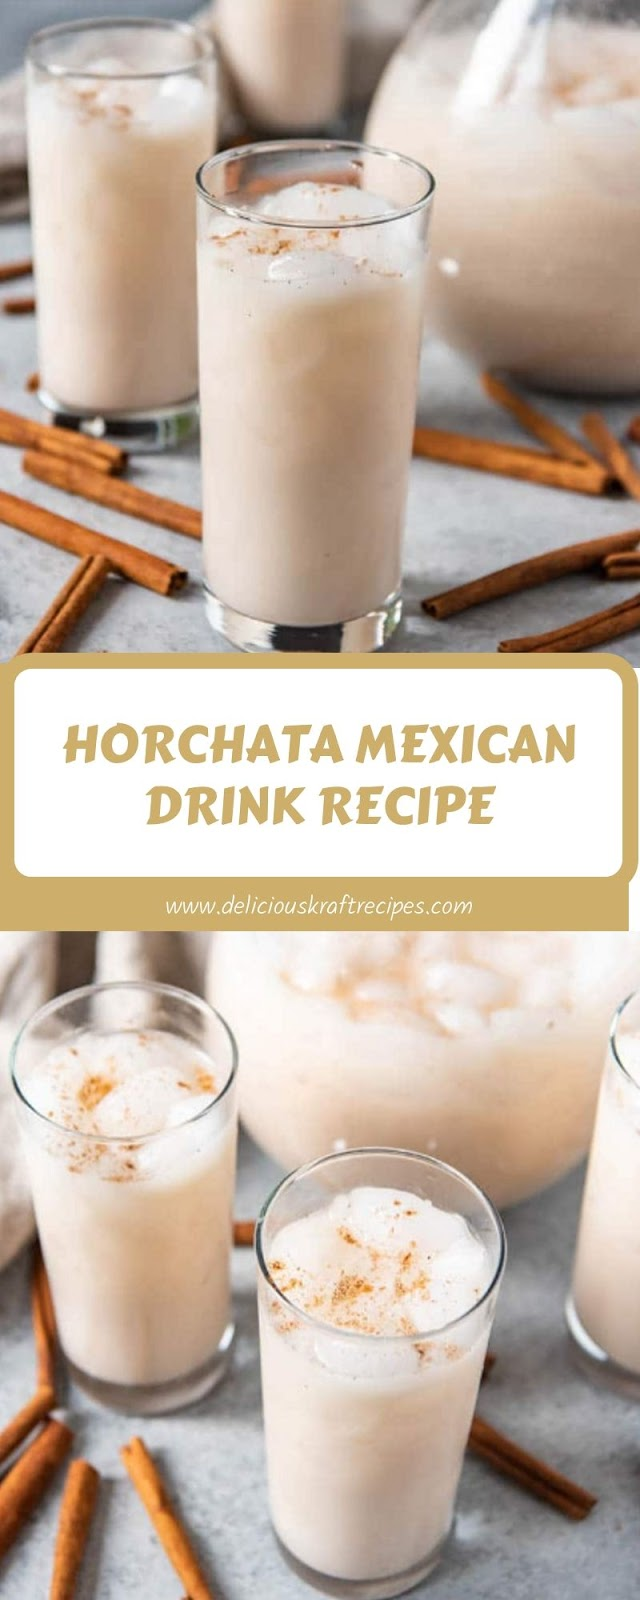 HORCHATA MEXICAN DRINK RECIPE